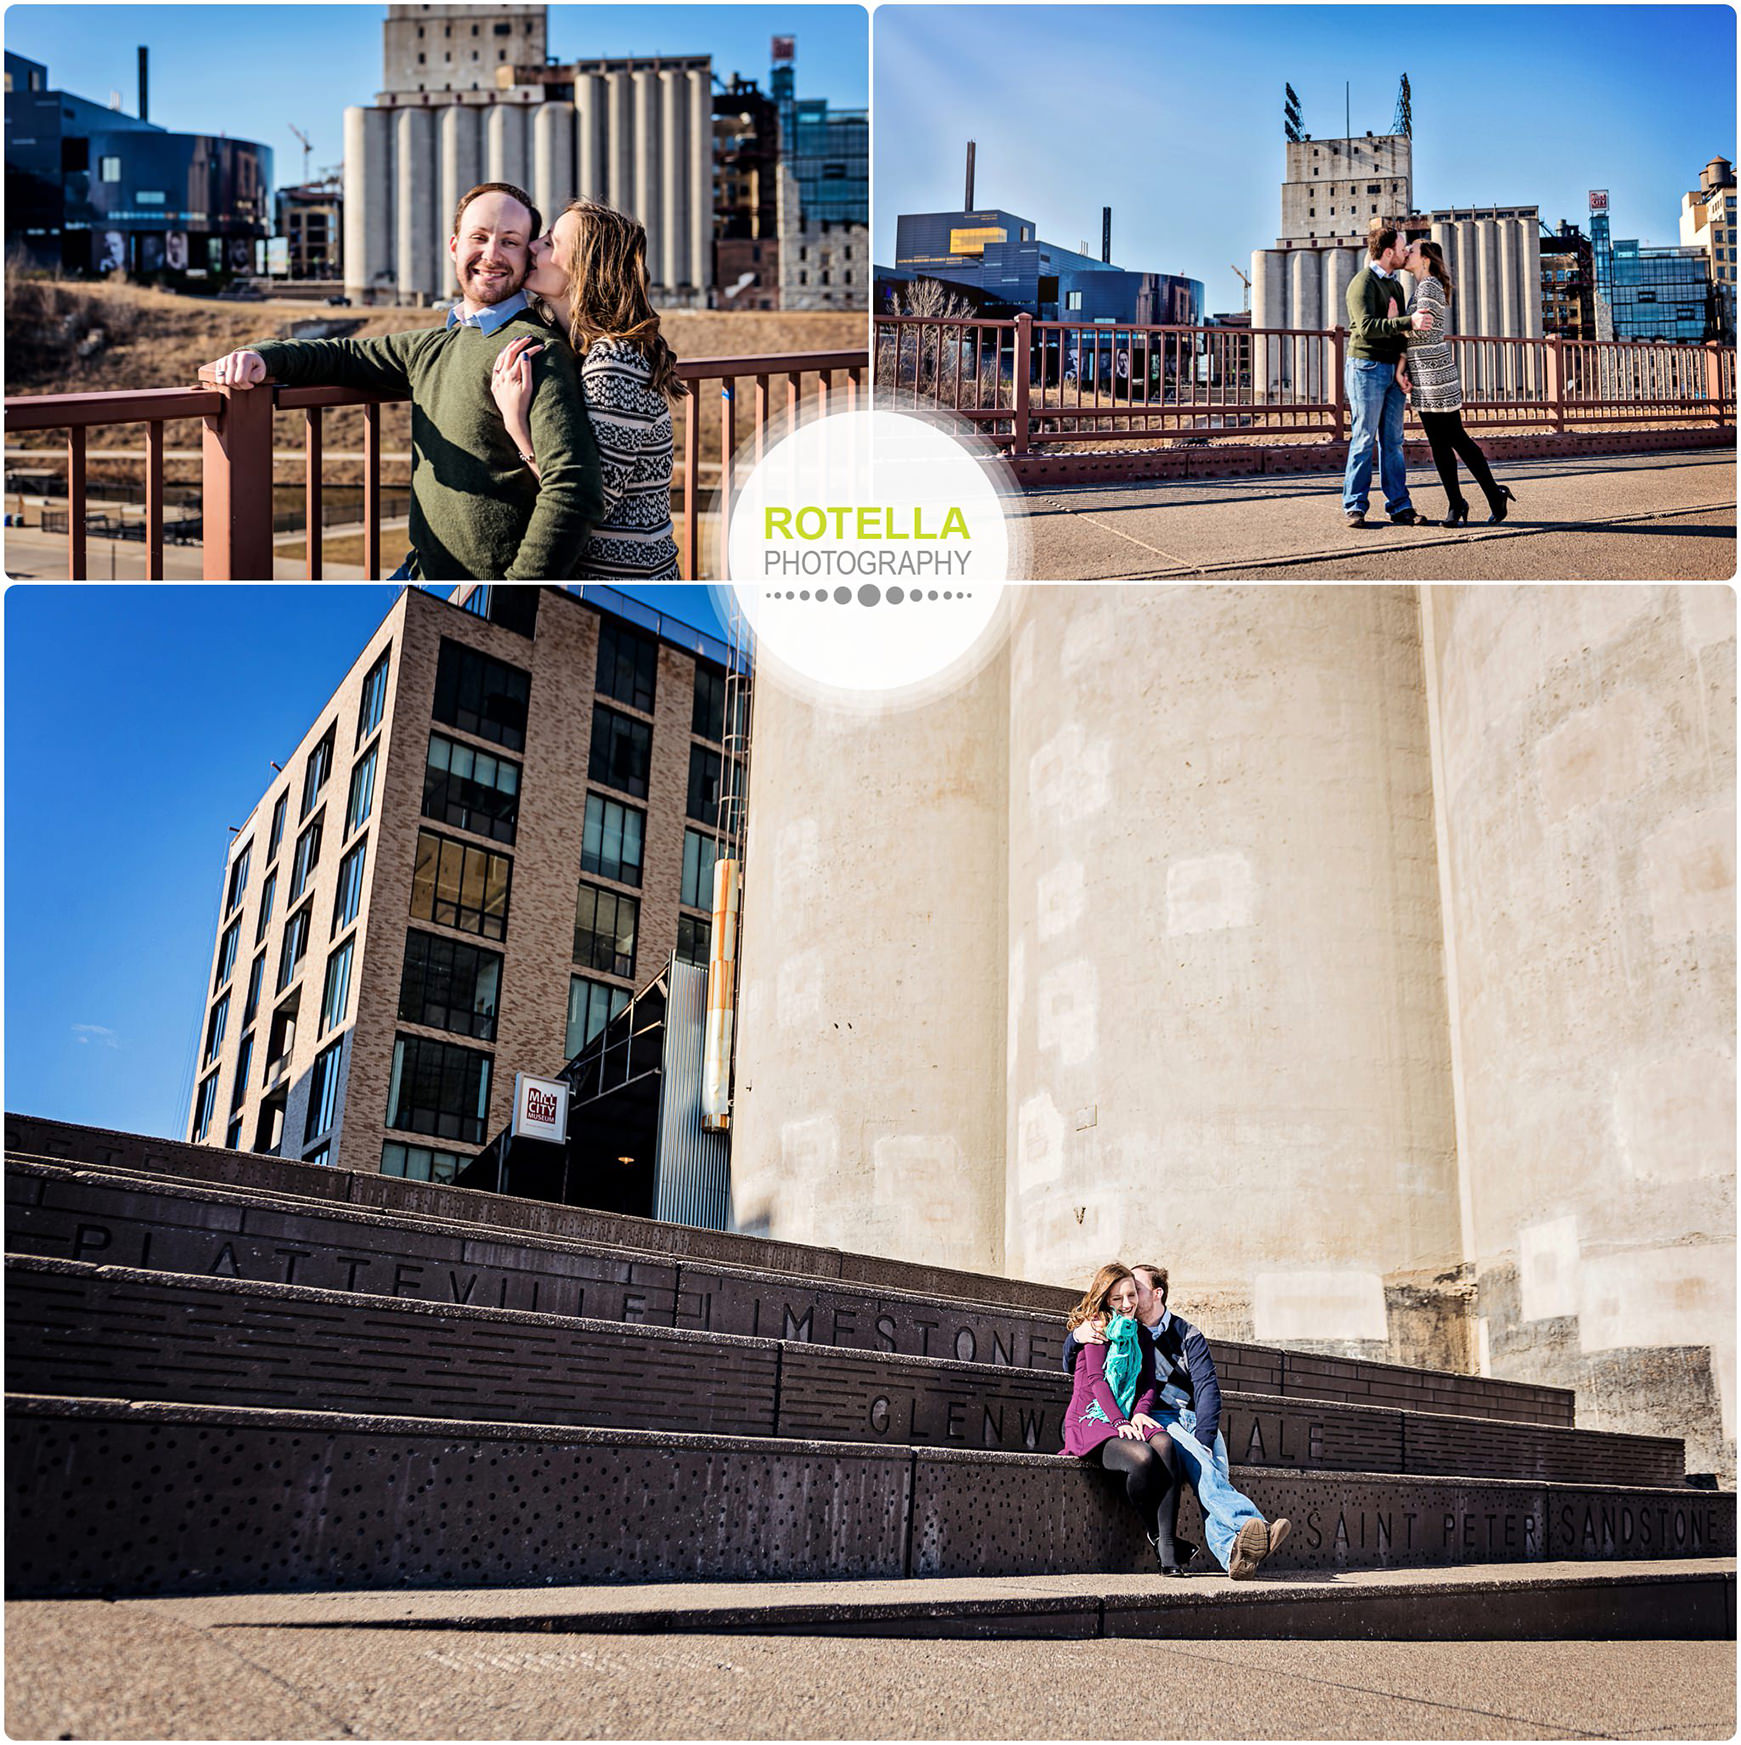 A-A-Minneapolis-Engagement-Photography-Rotella-Photography-2015_0005